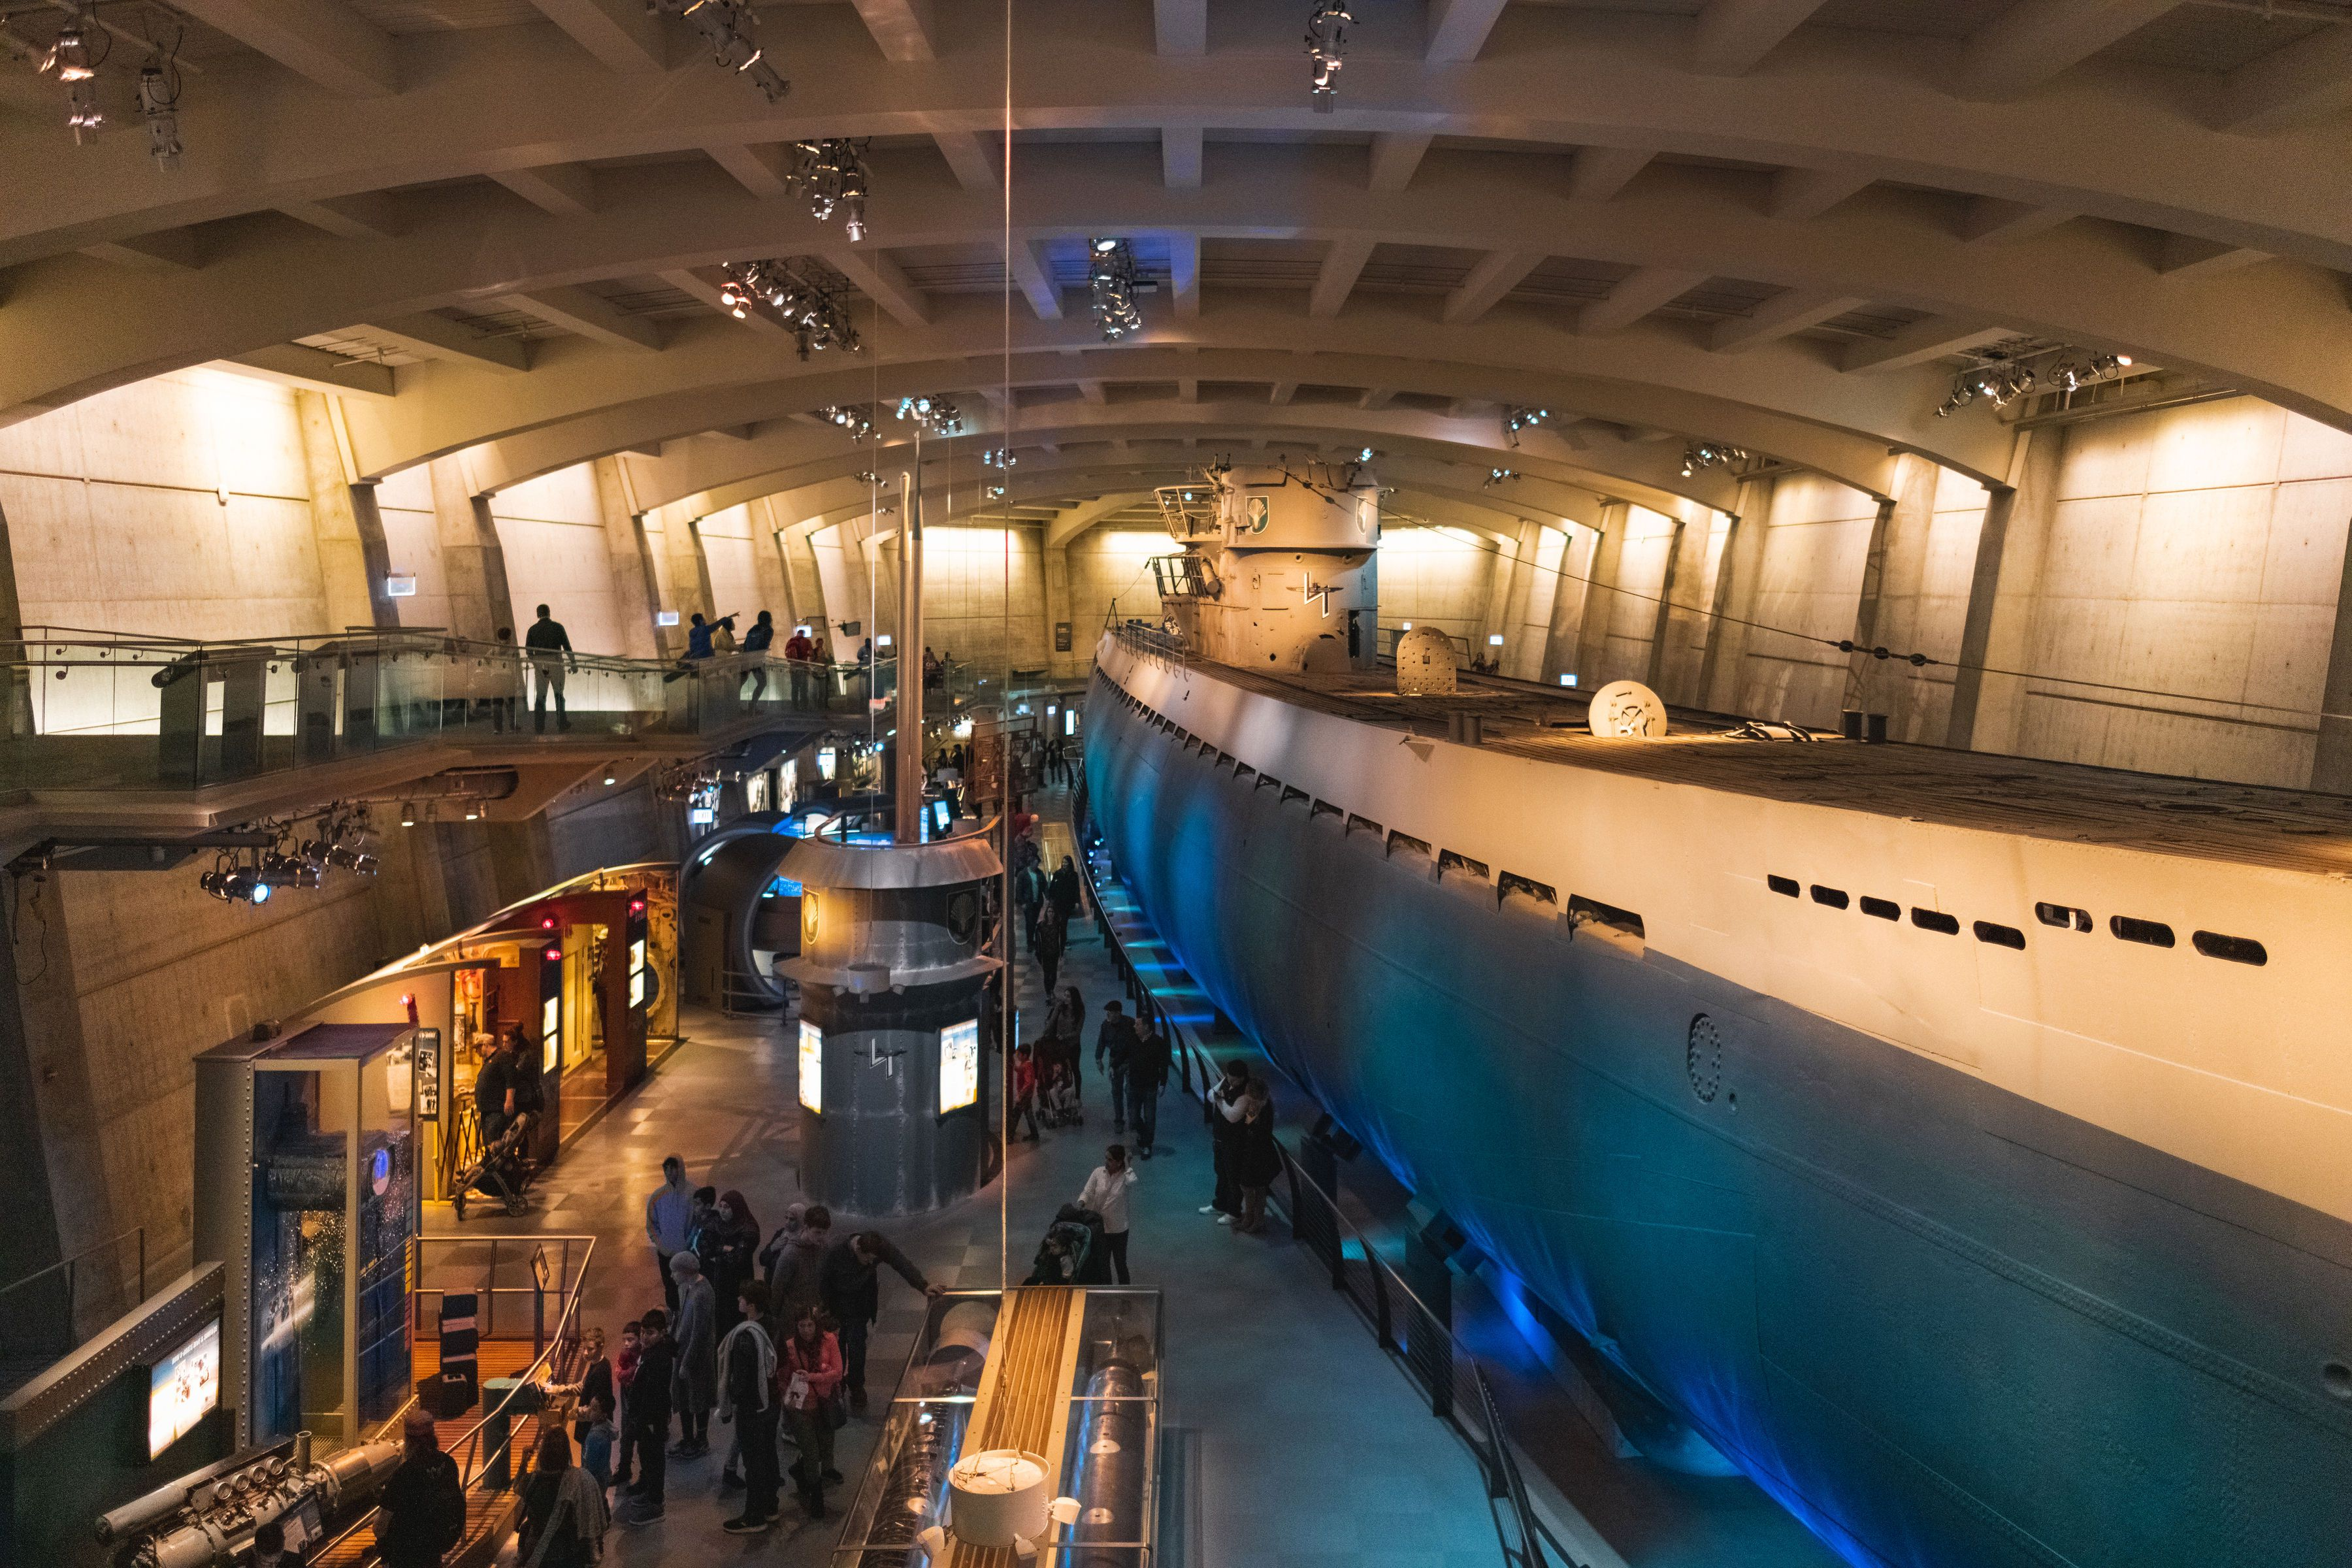 A large submarine in an exhibition hall at the Museum of Science and Industry in chicago